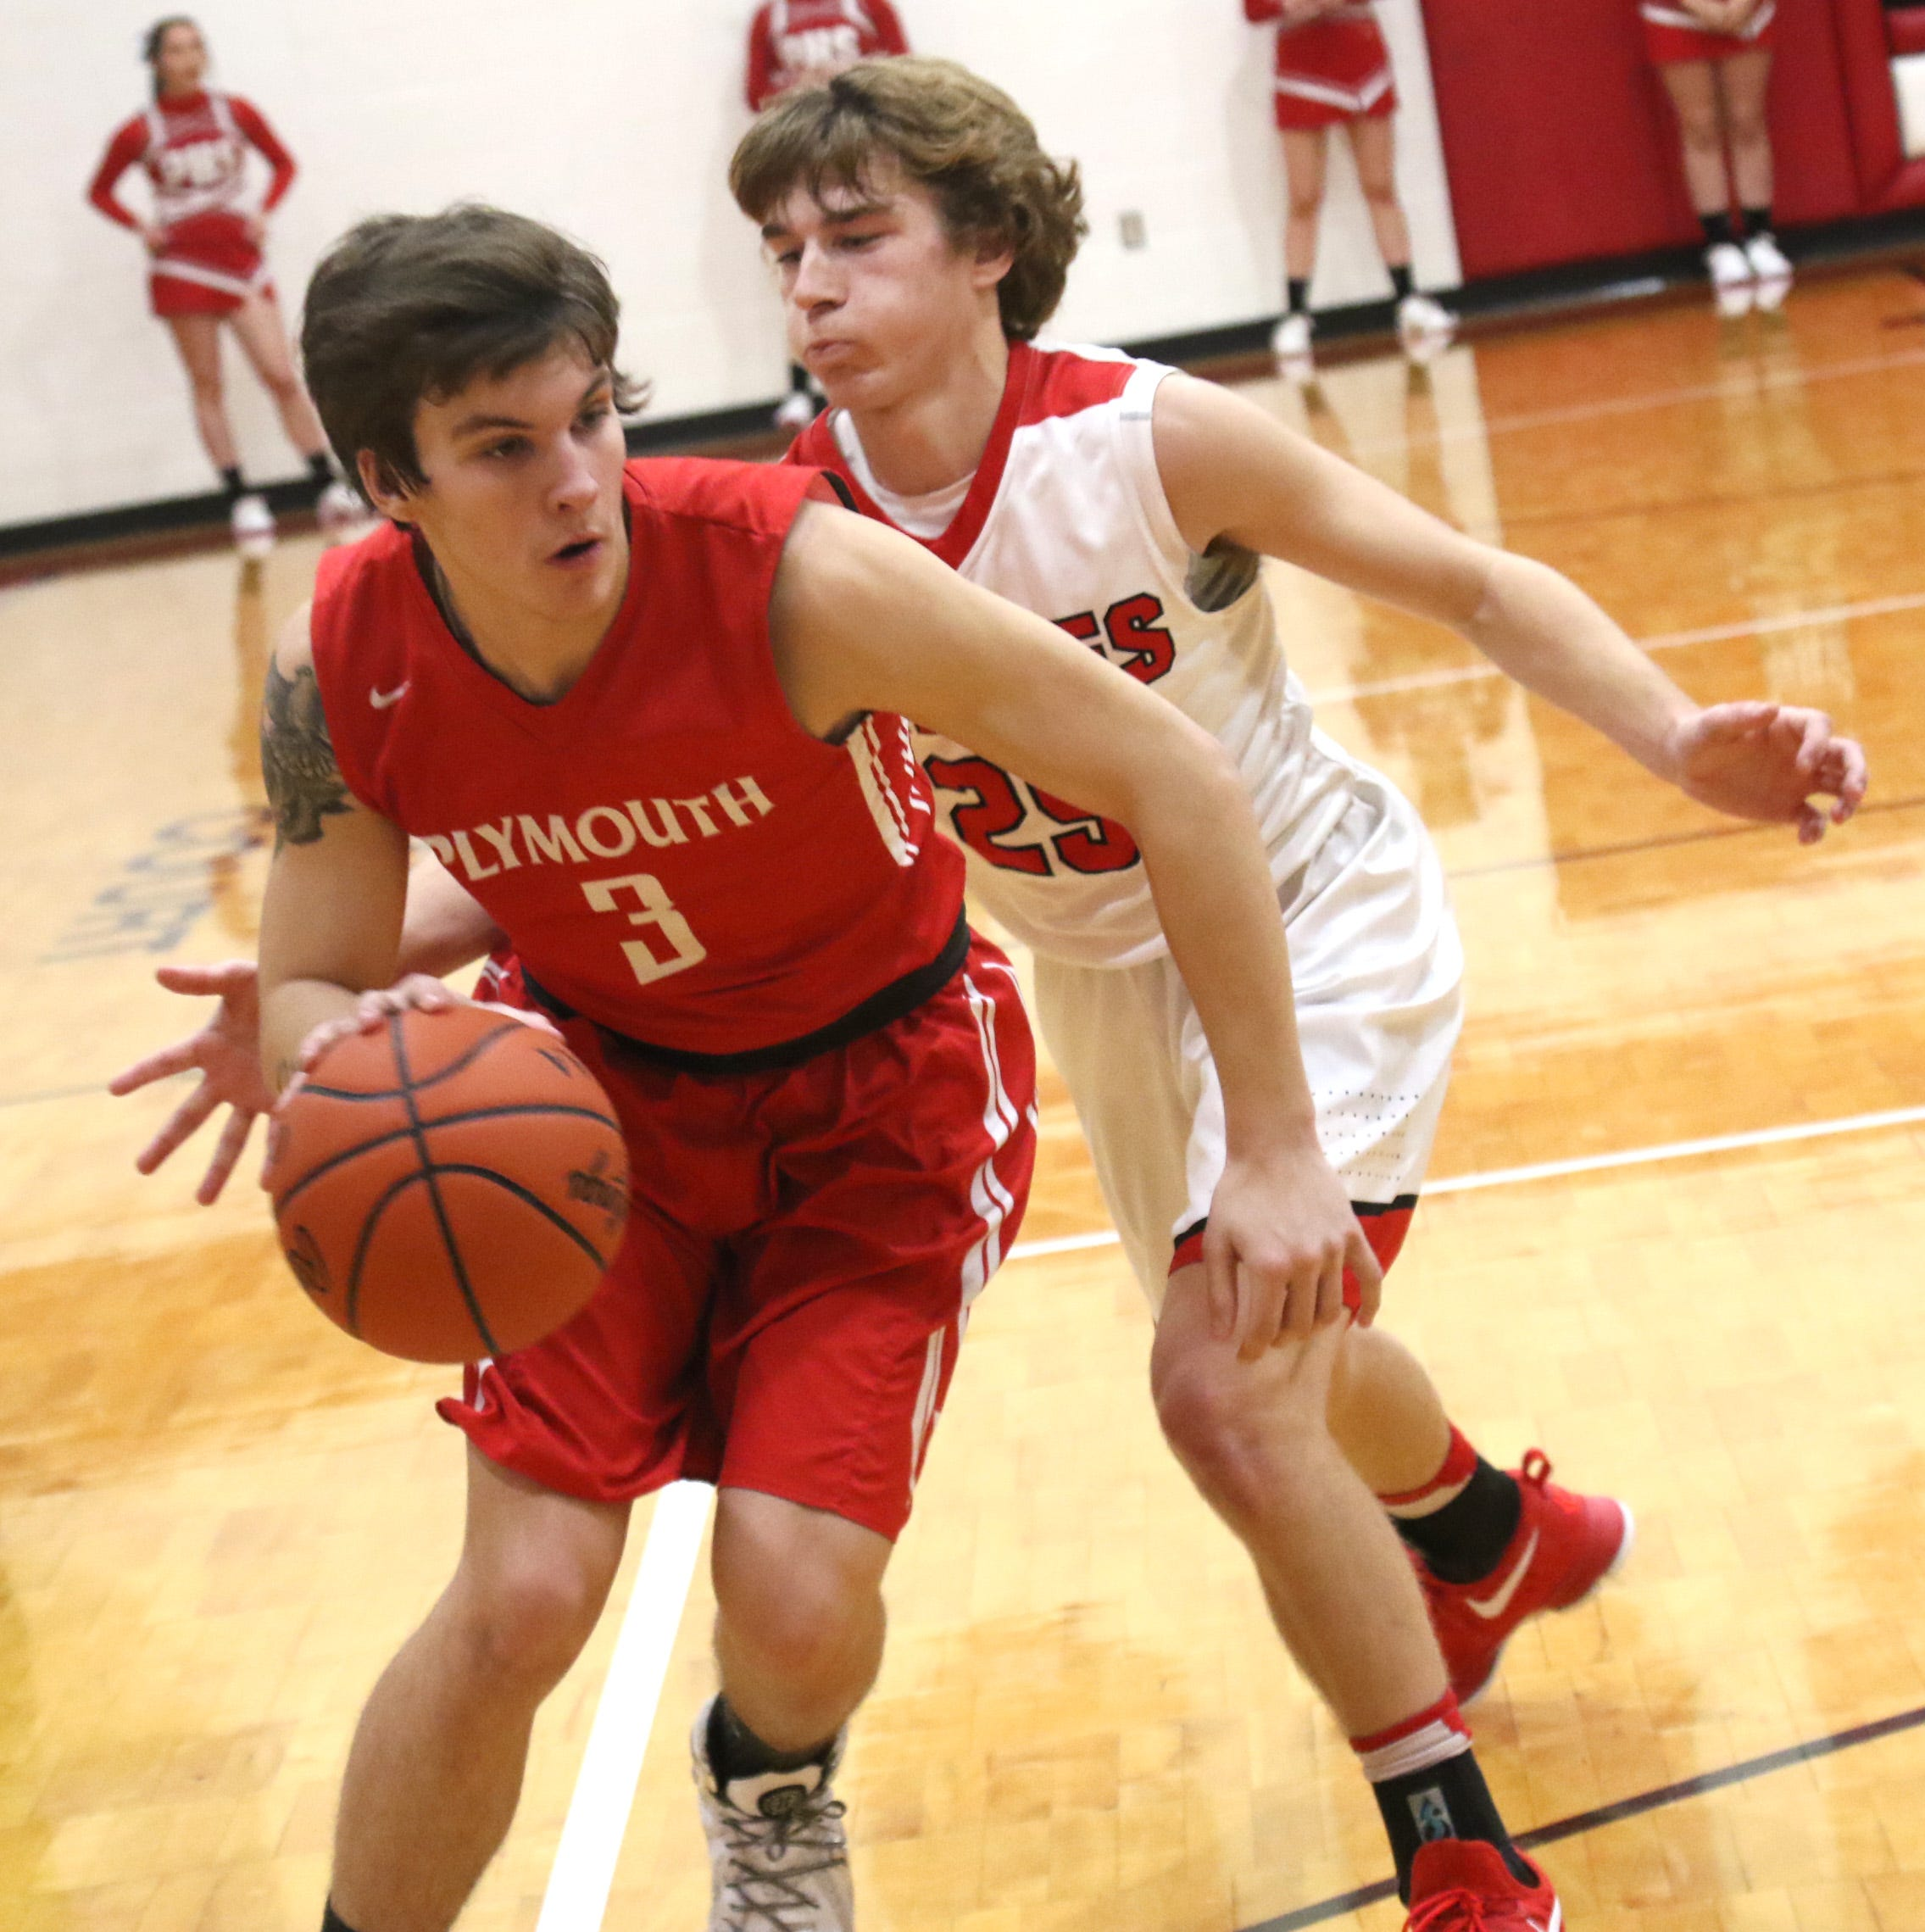 Gibson's career night powers Plymouth Big Red to victory over Mansfield Christian